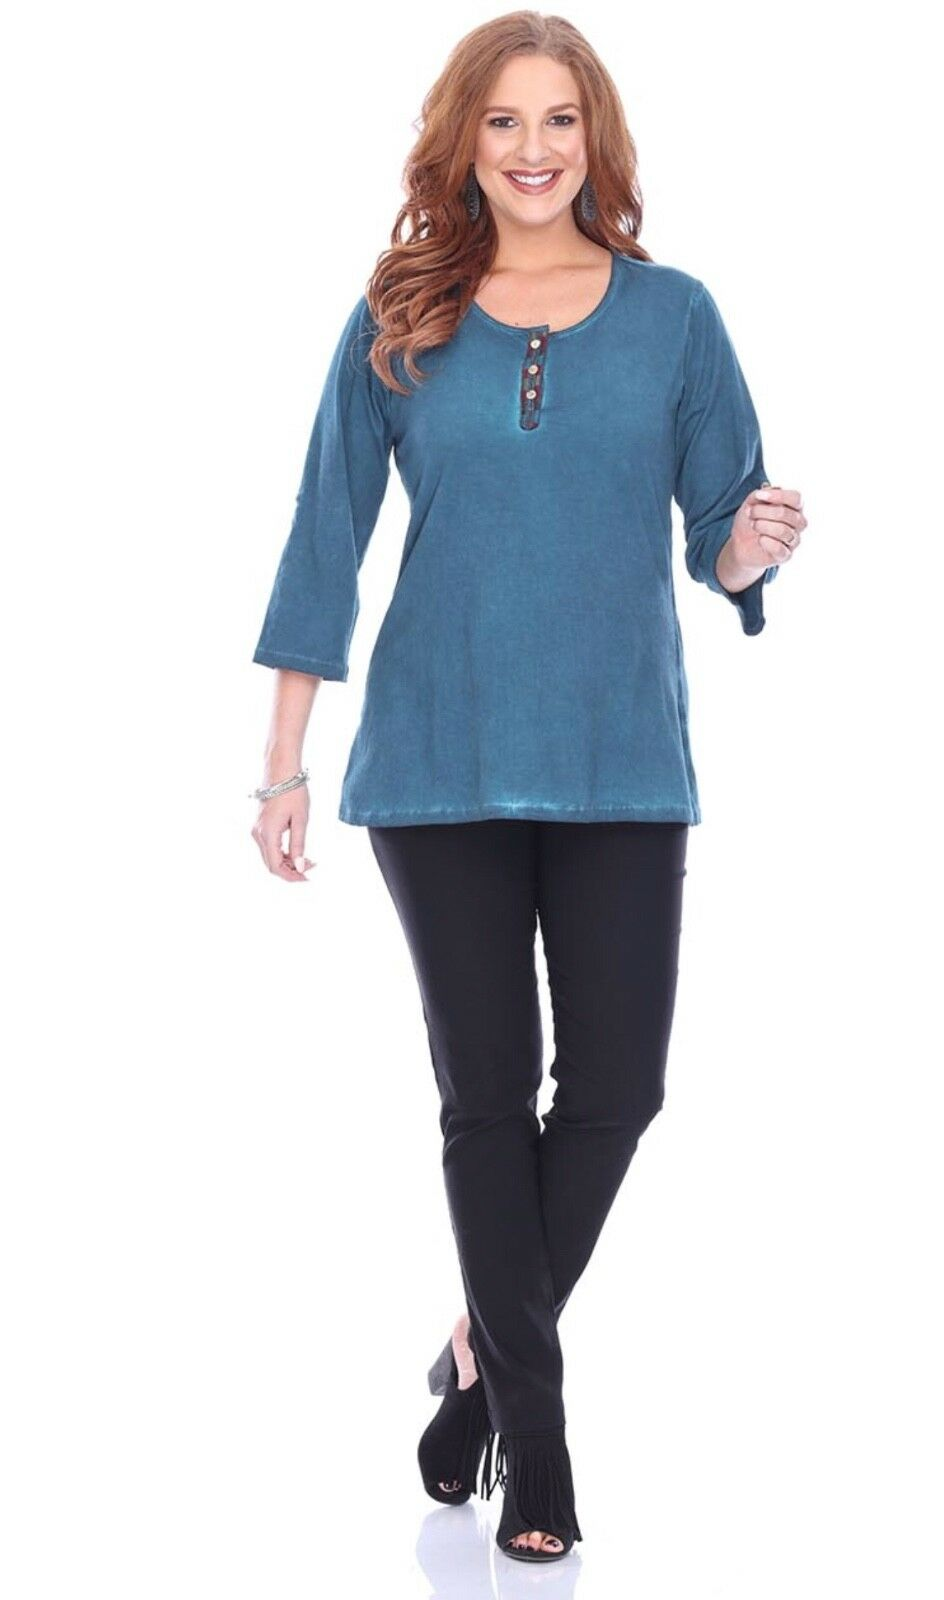 NEW Parsley&Sage Plus Fall Winter Buttoned Back Teal Bailey Blouse Top Shirt 2X